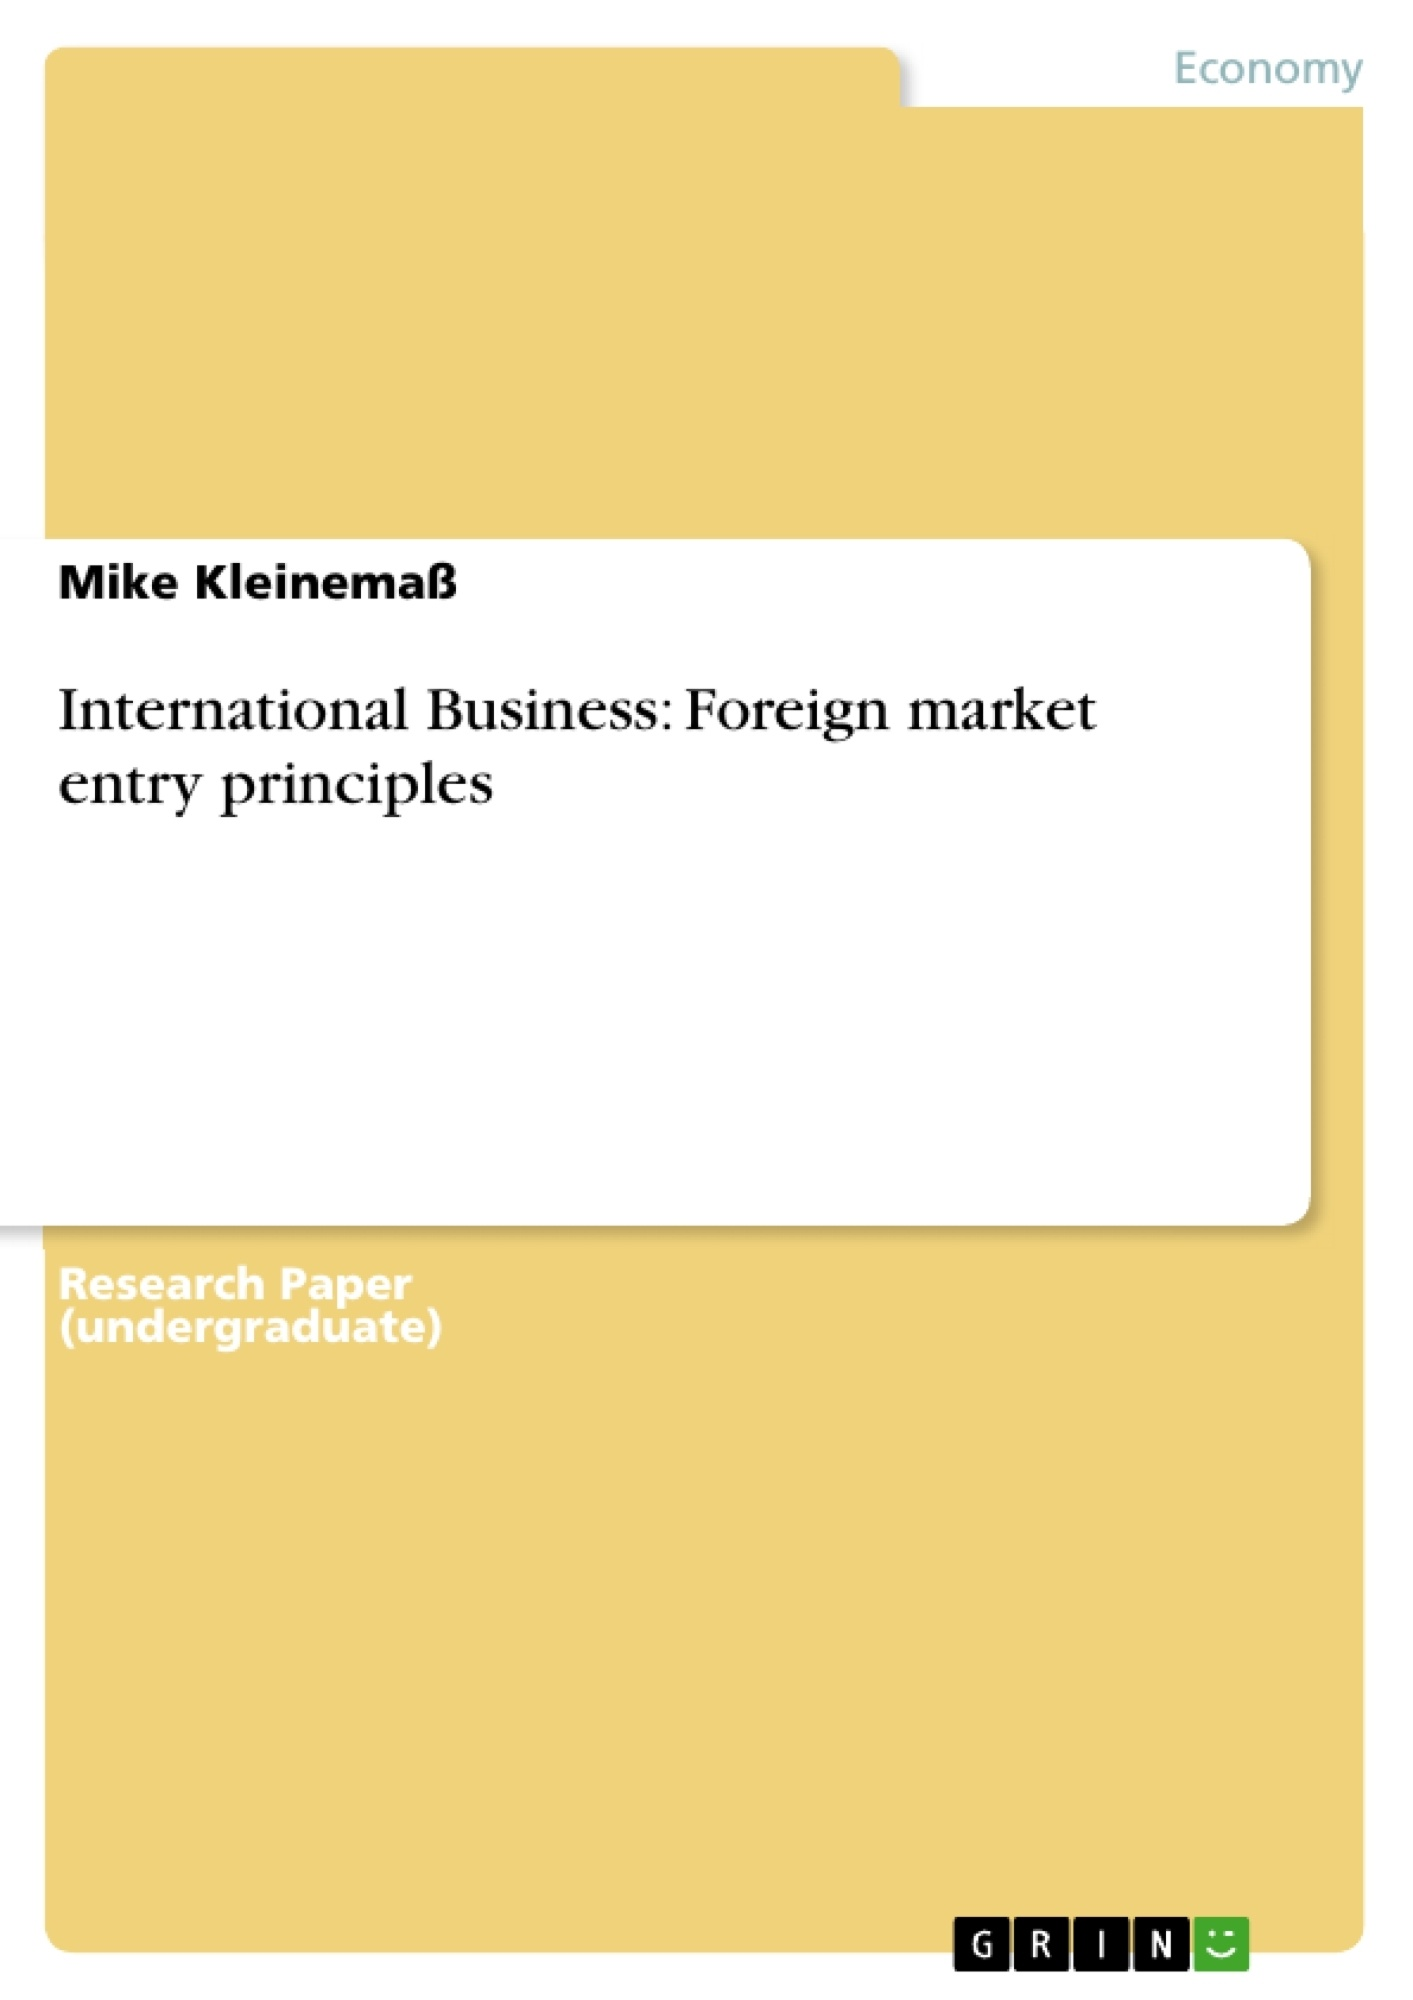 Title: International Business: Foreign market entry principles